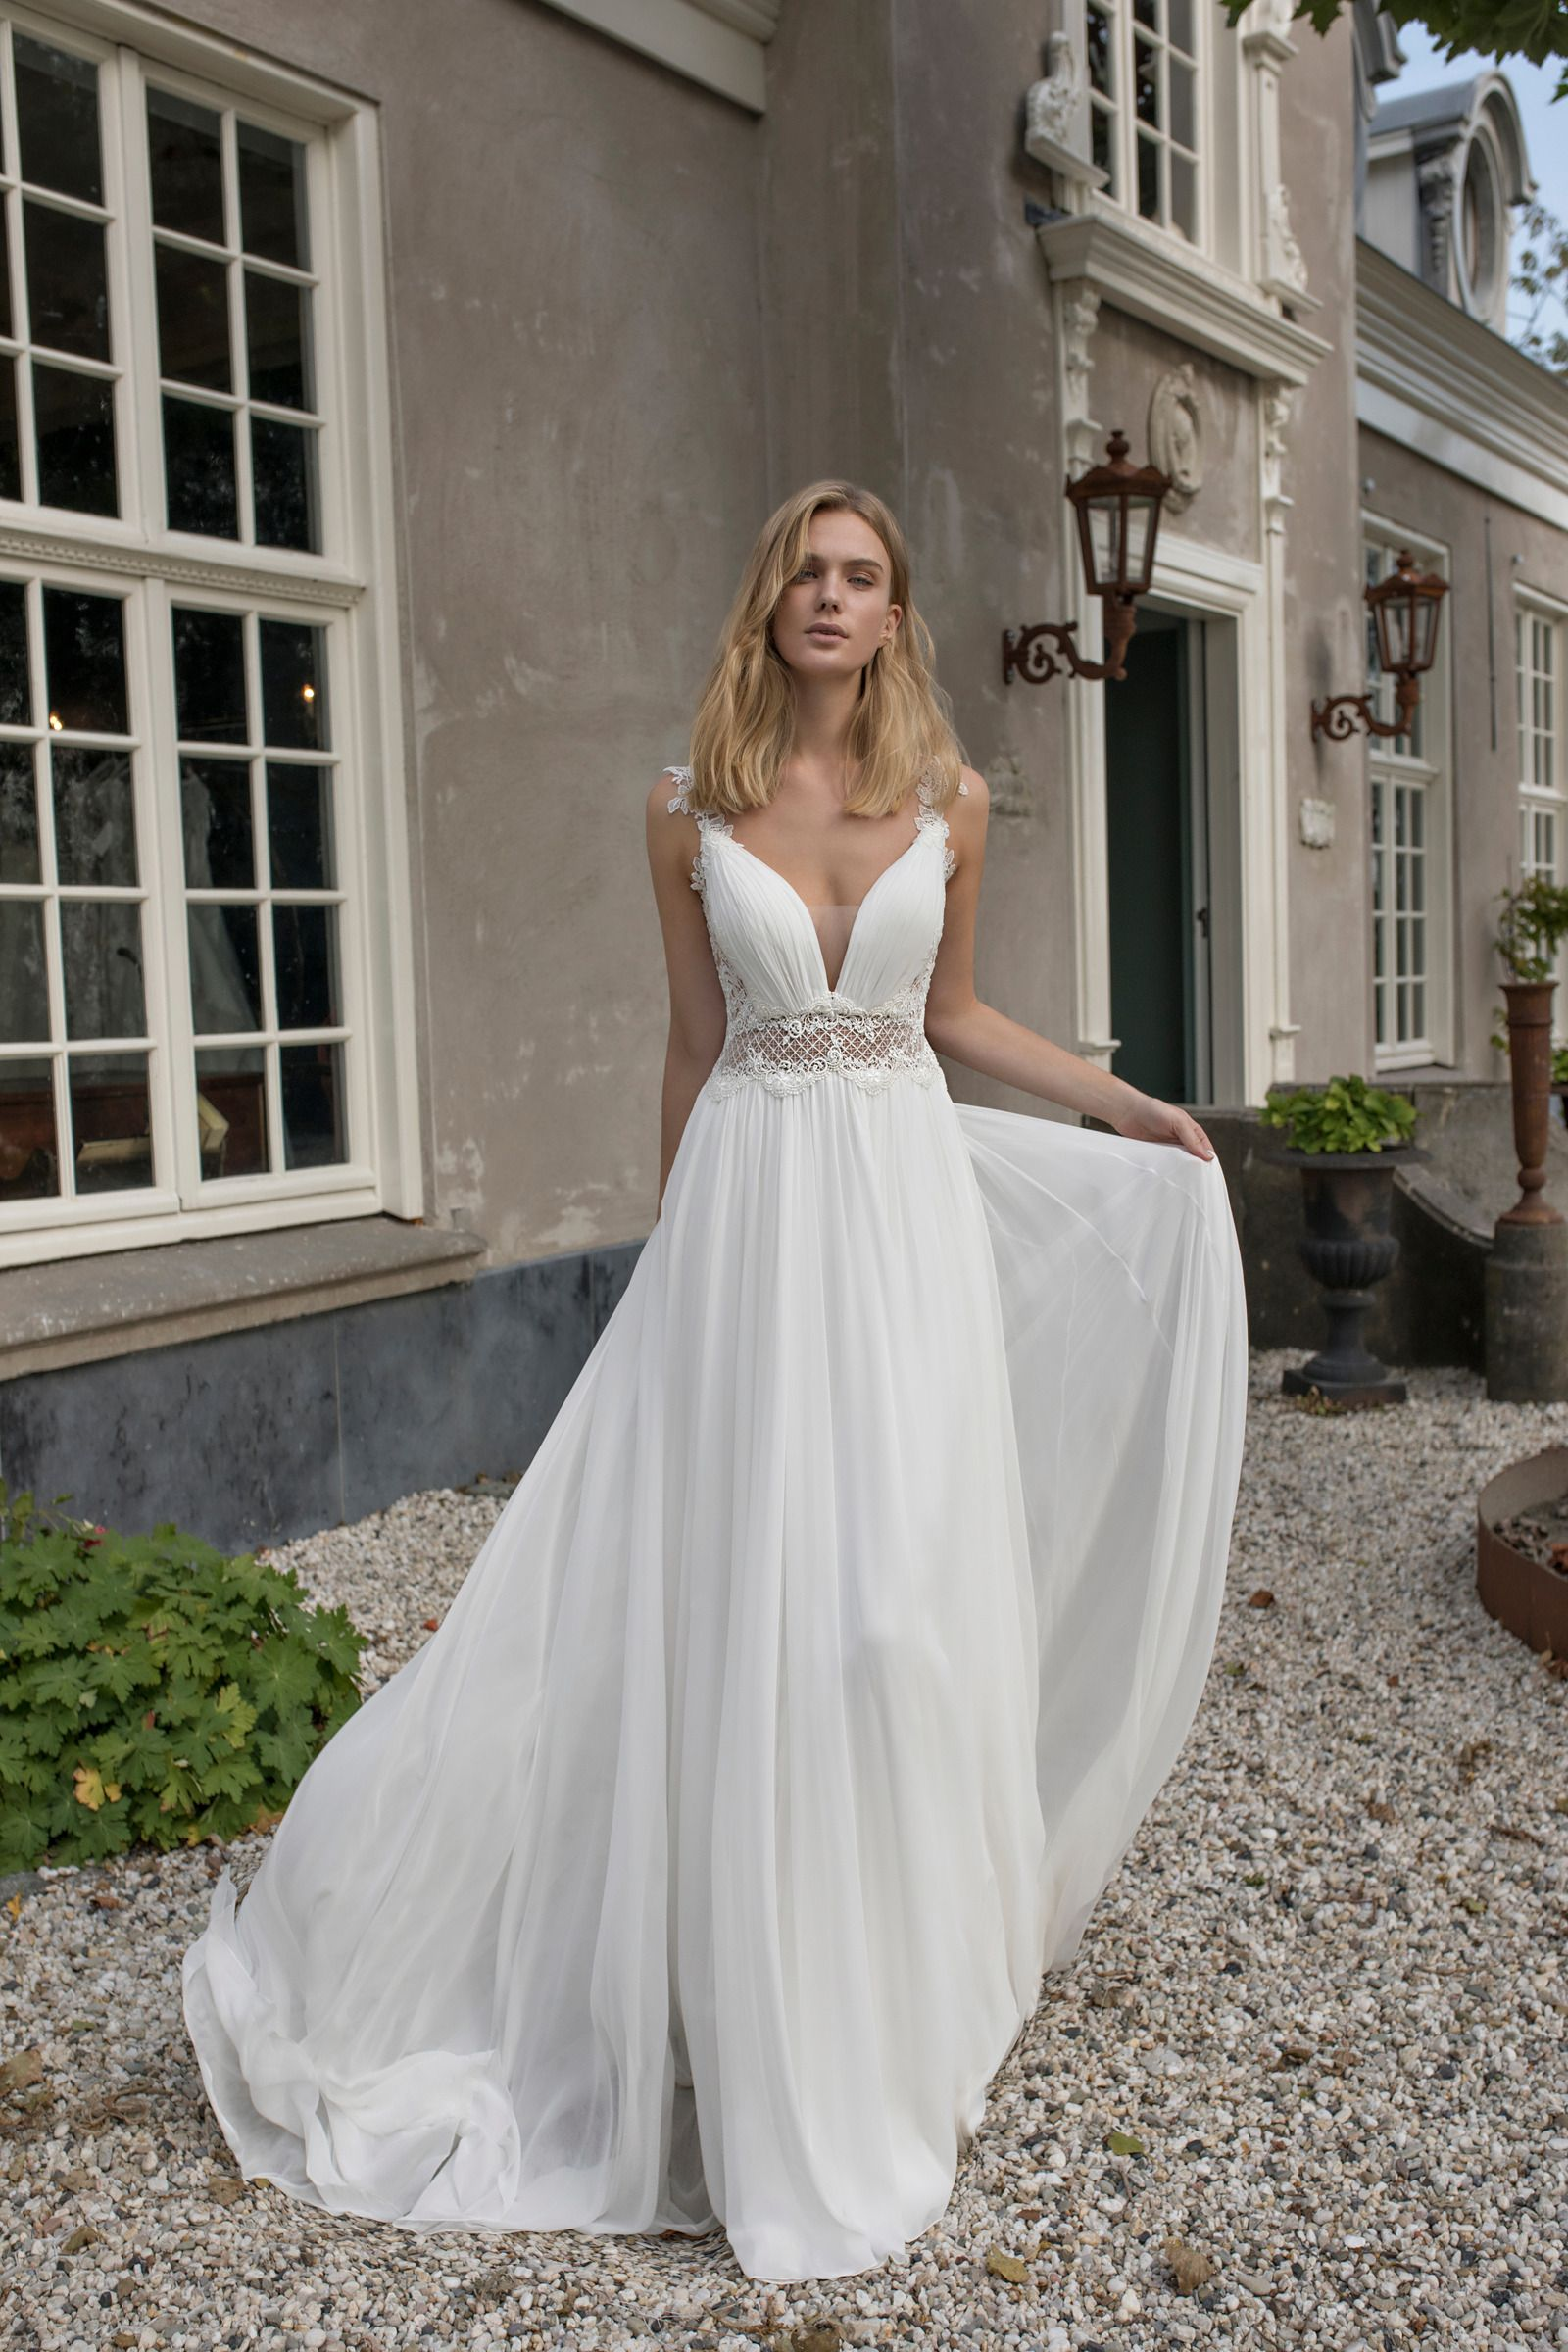 Beautiful Ivory Lace Chiffon Backless Empire Waist Wedding Dress Bridal Gown With Open Back And With Images Sweet Wedding Dresses Wedding Dresses Princess Wedding Gown [ 2400 x 1600 Pixel ]